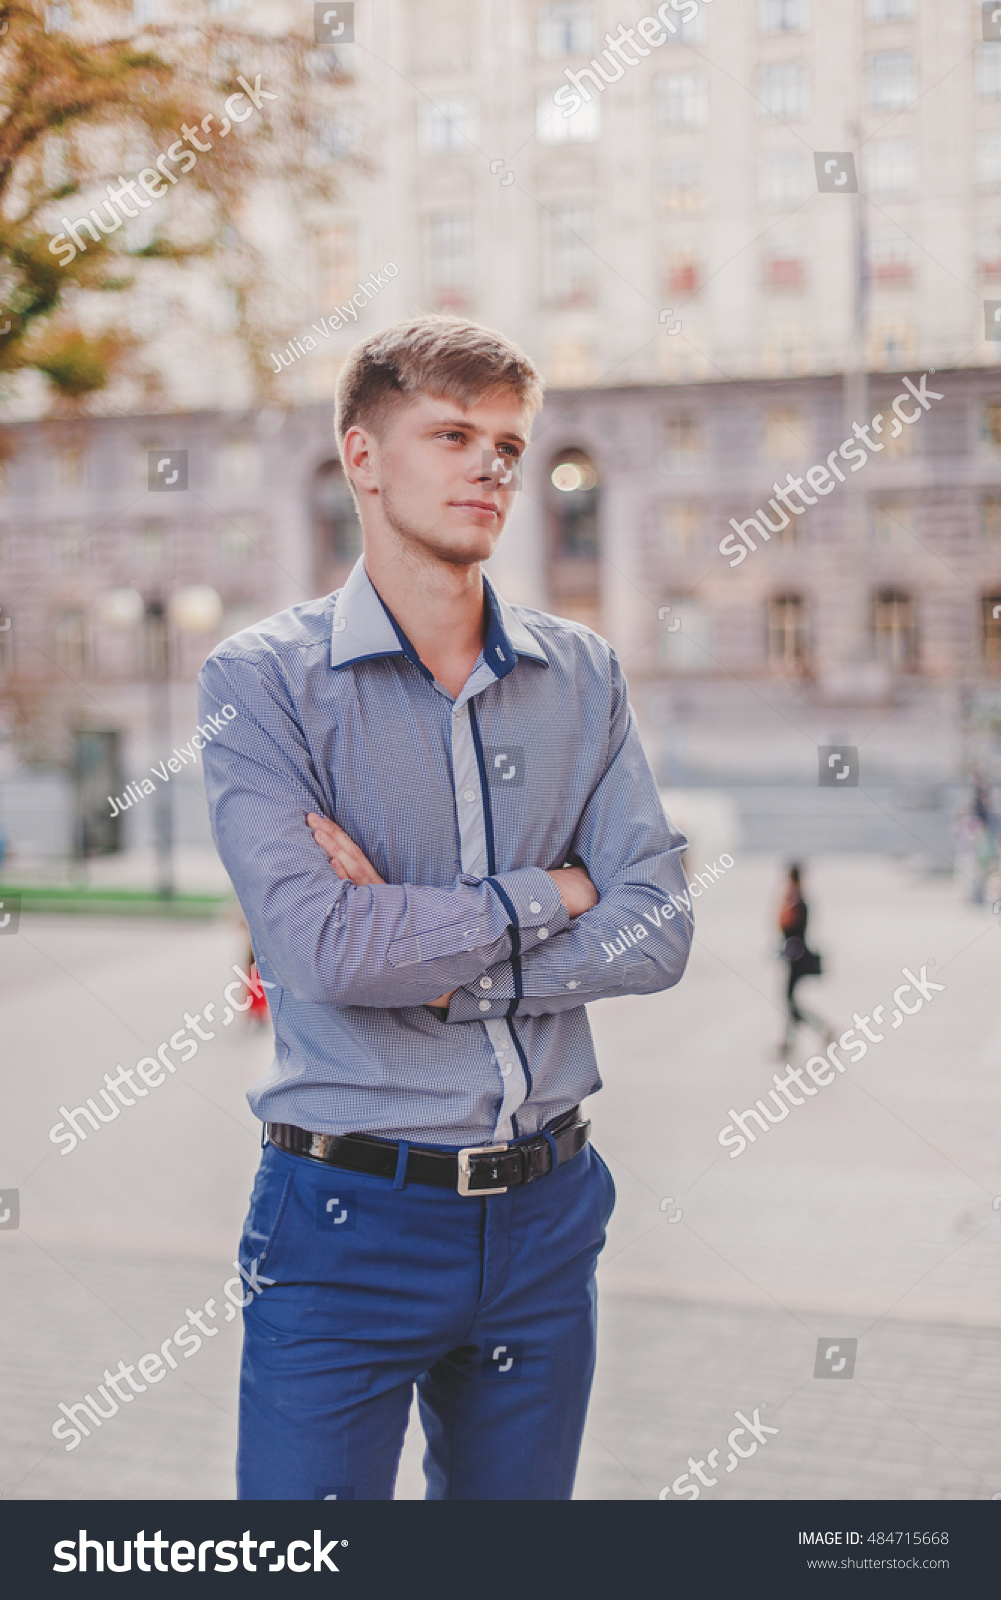 Beautiful young attractive cheerful man model blonde in classic suit  standing amidst the city center street